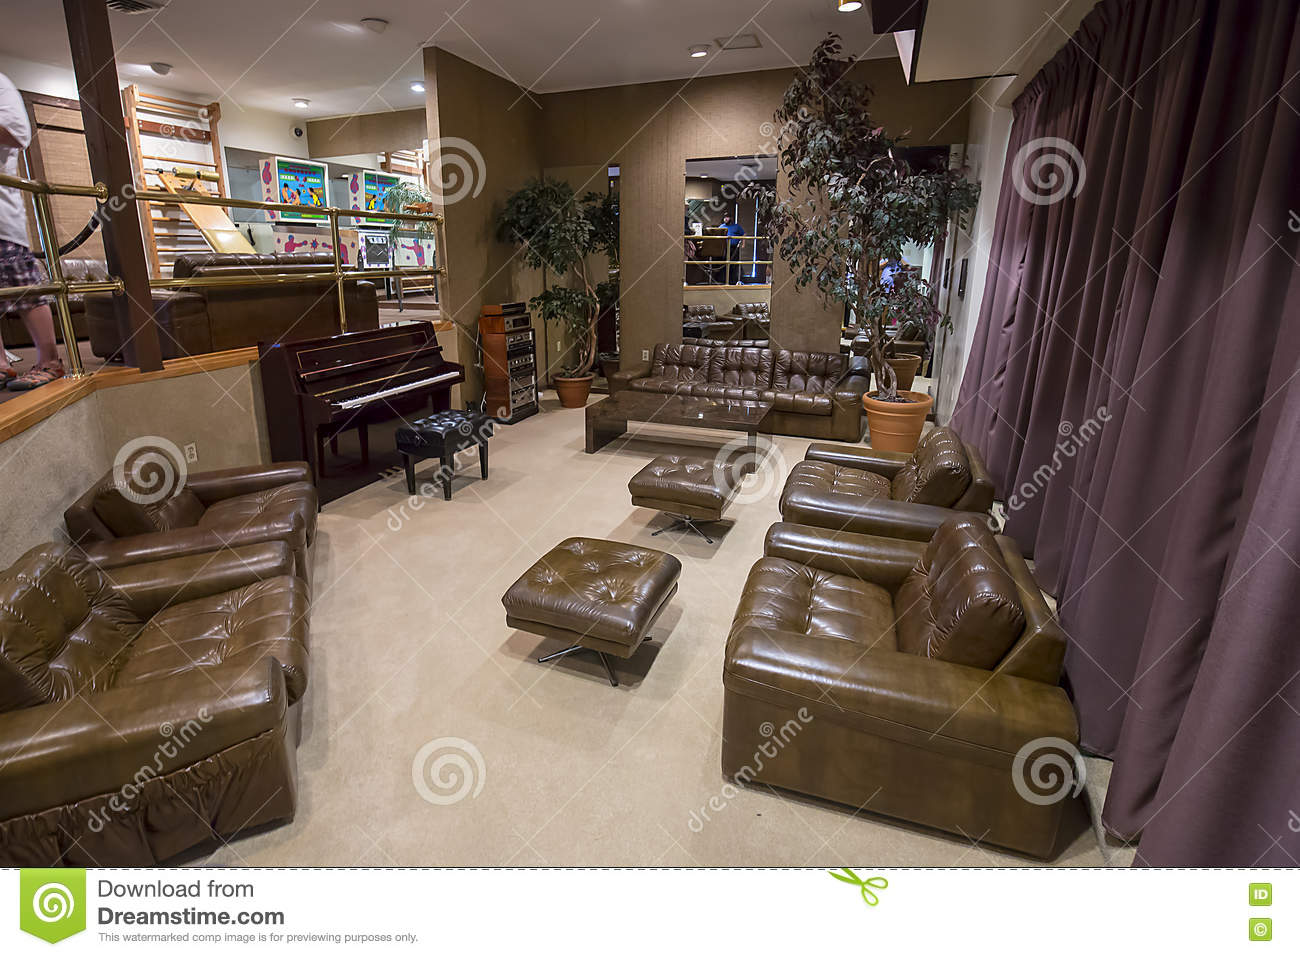 Graceland Racquetball Building Lounge Editorial Stock